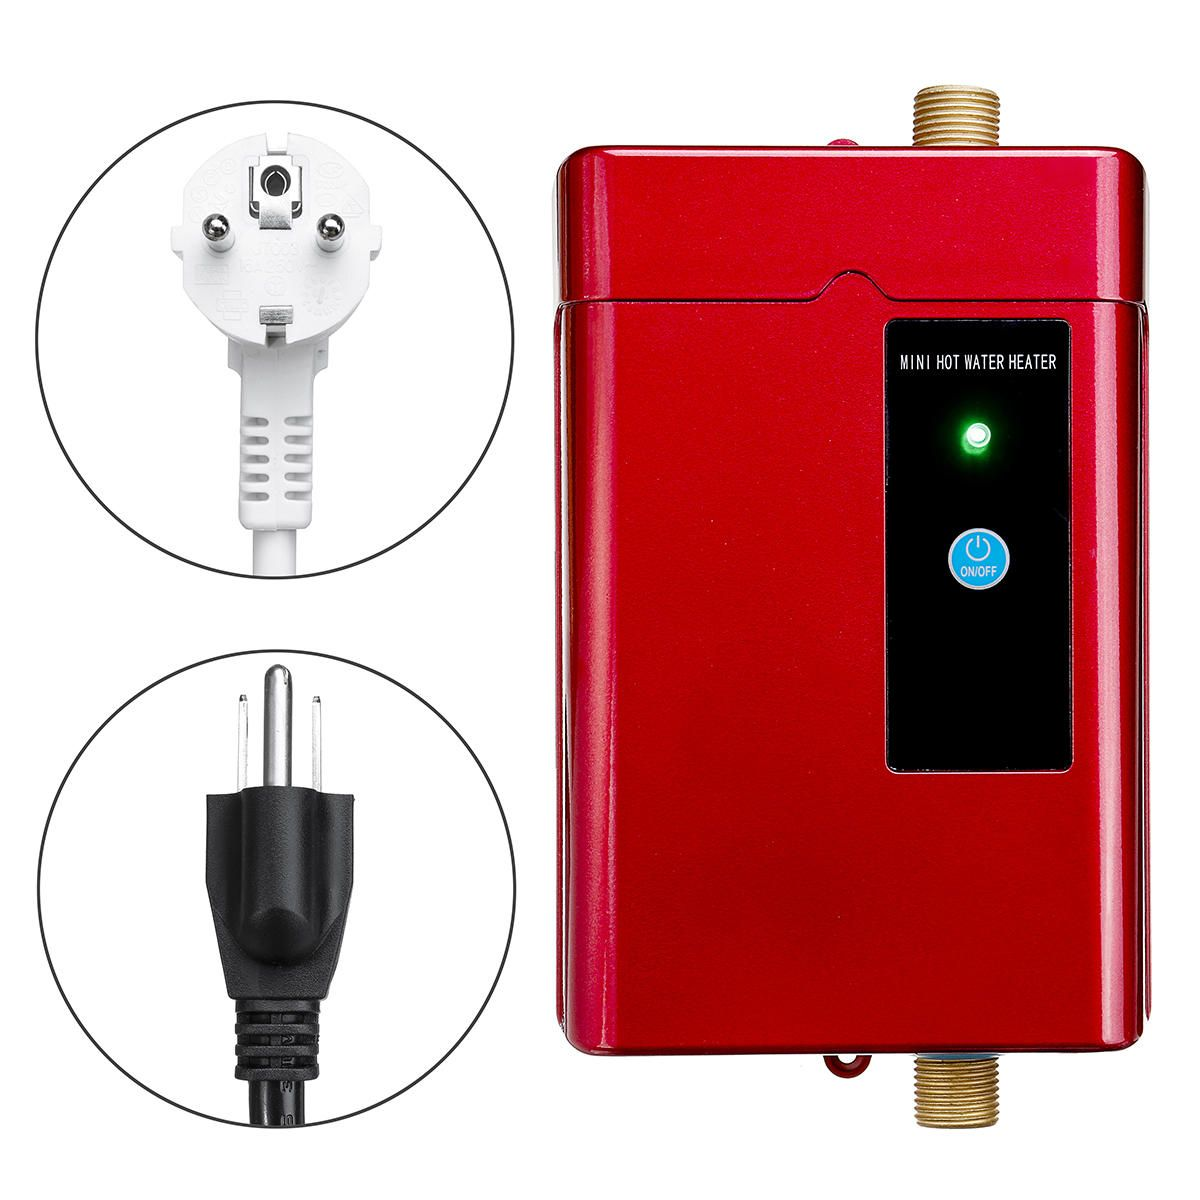 Electric Tankless Hot Water Heater Instant Heating For Bathroom Kitchen Washing Tankless Hot Water Heater Water Flow Save Water